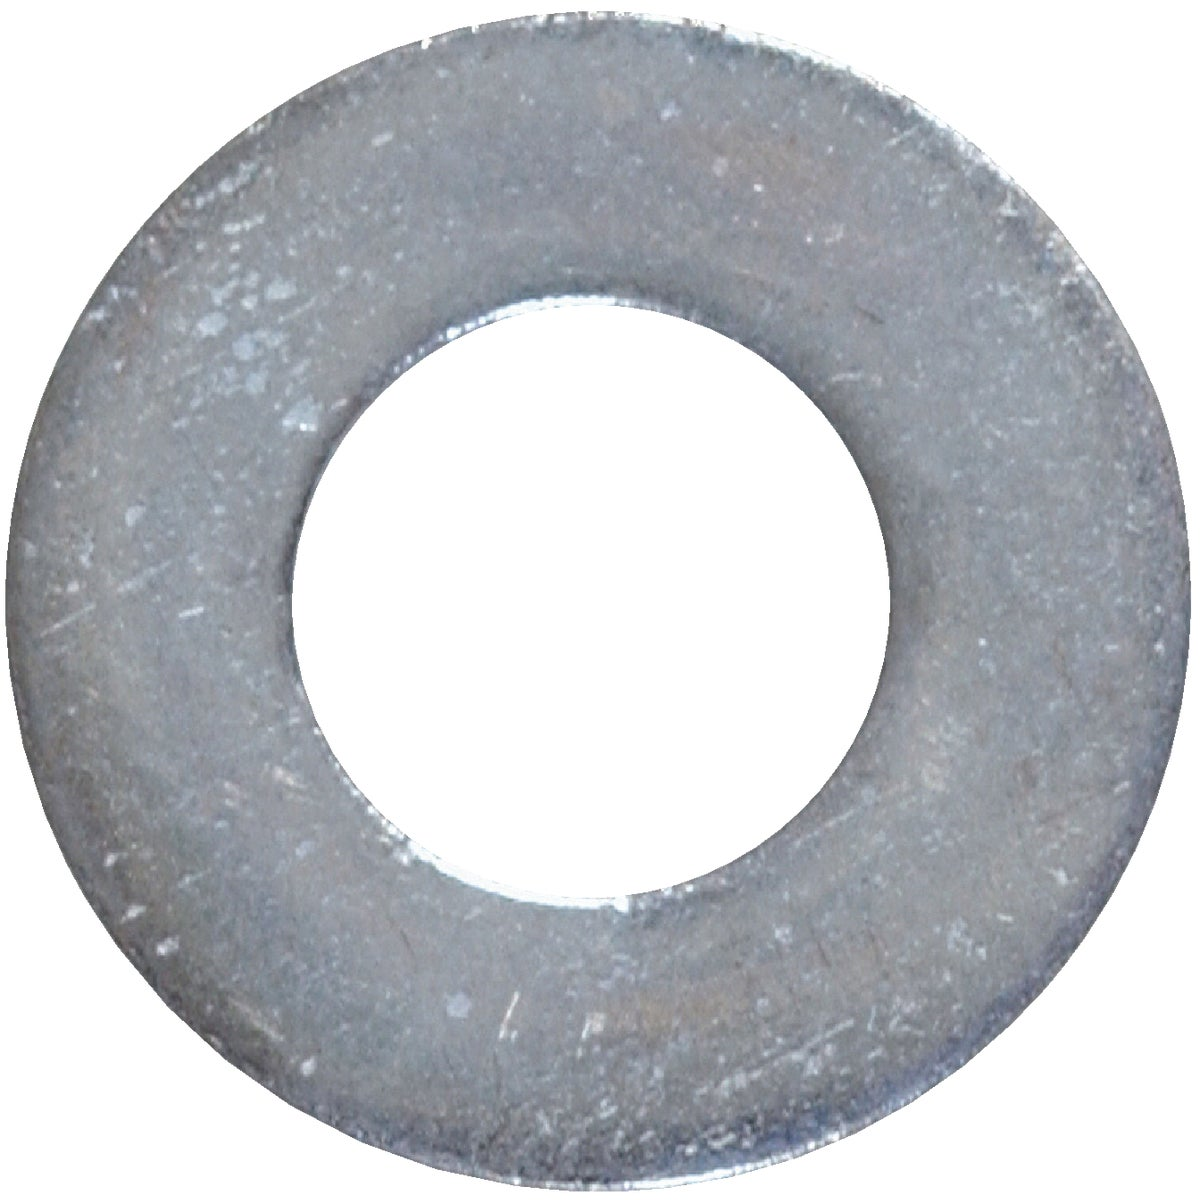 "5LB 5/8"" USS FLT WASHER - 811015 by Hillman Fastener"